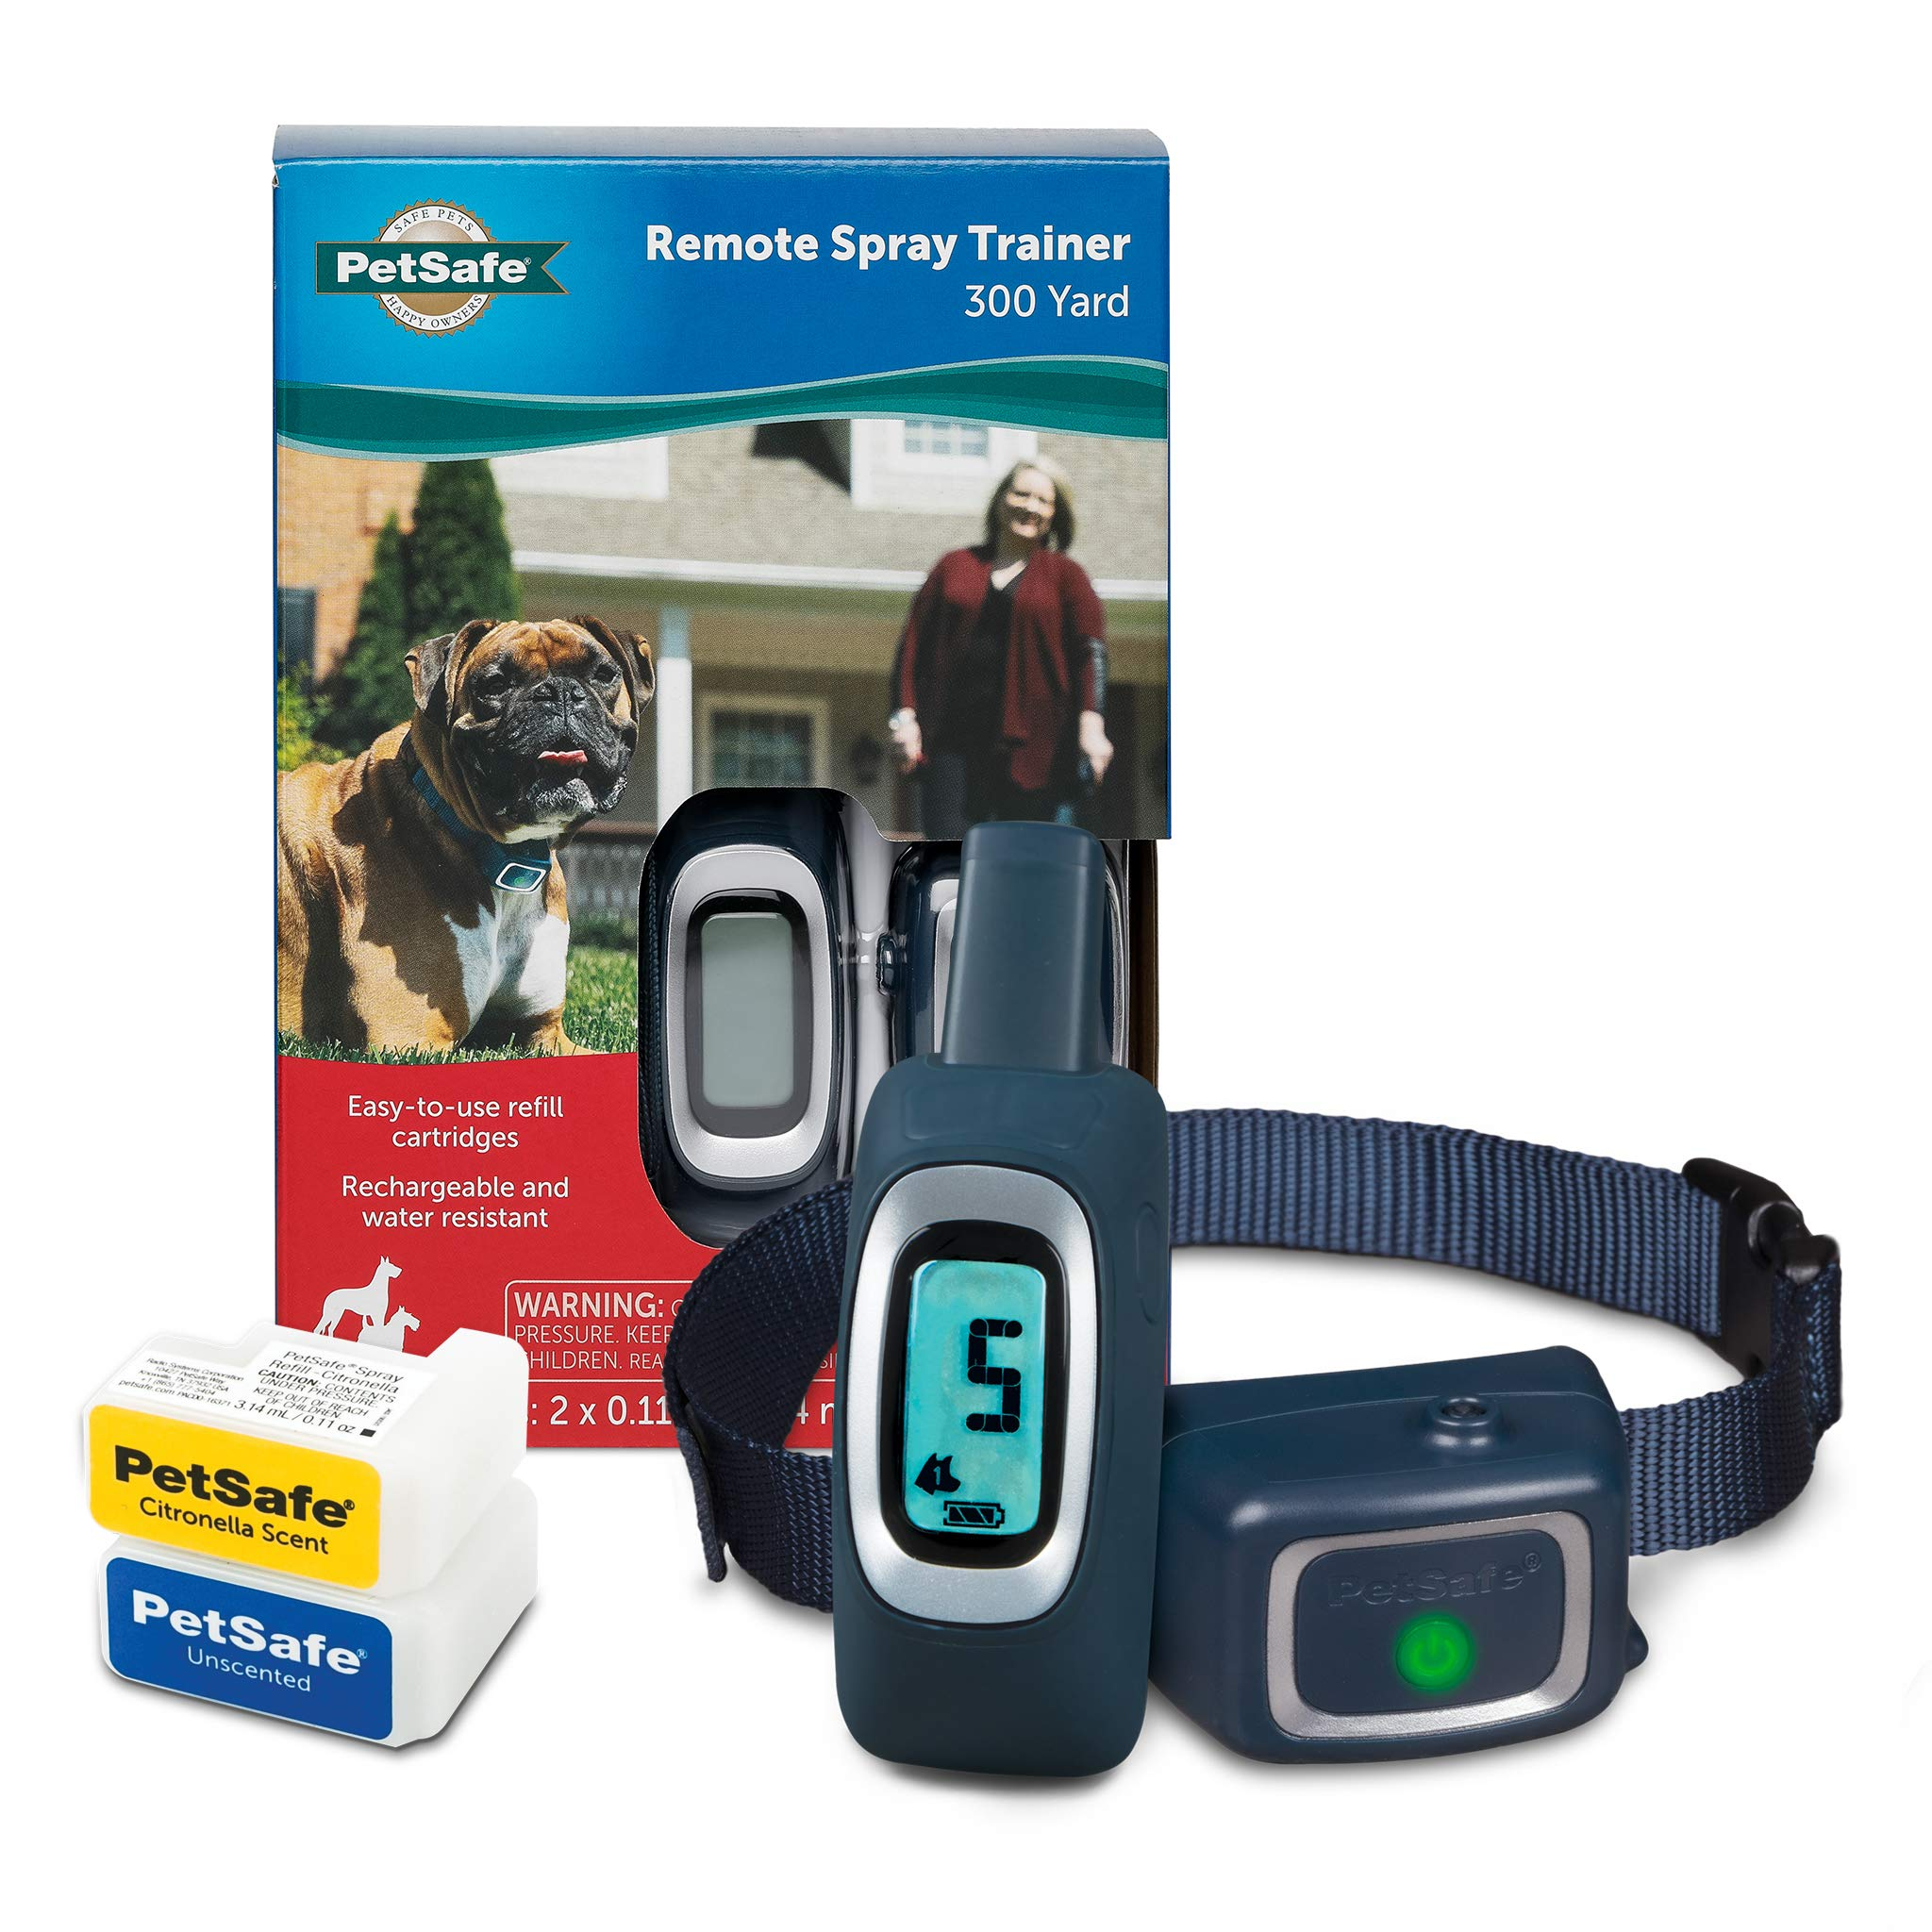 PetSafe Remote Spray Trainer - Collar and Remote for Dogs 8 lb. and Up, Fits Up to 27 in. Neck, 300 Yd. Range, Water Resistant and Rechargeable Collar with Citronella and Unscented Cartridges by PetSafe